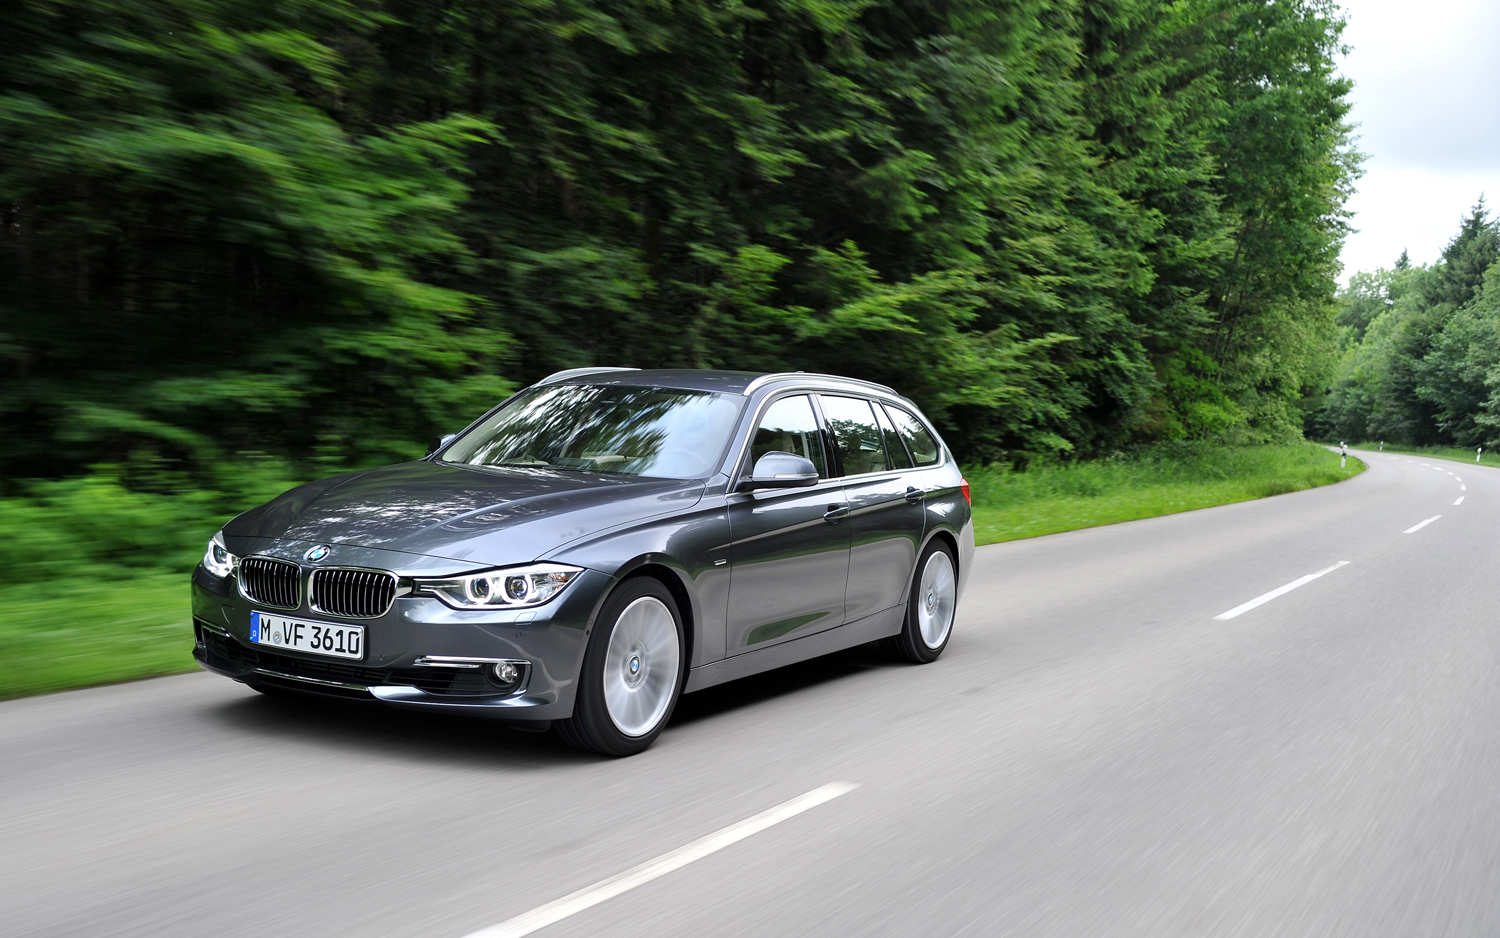 2013 BMW 328i Sports Wagon First Drive